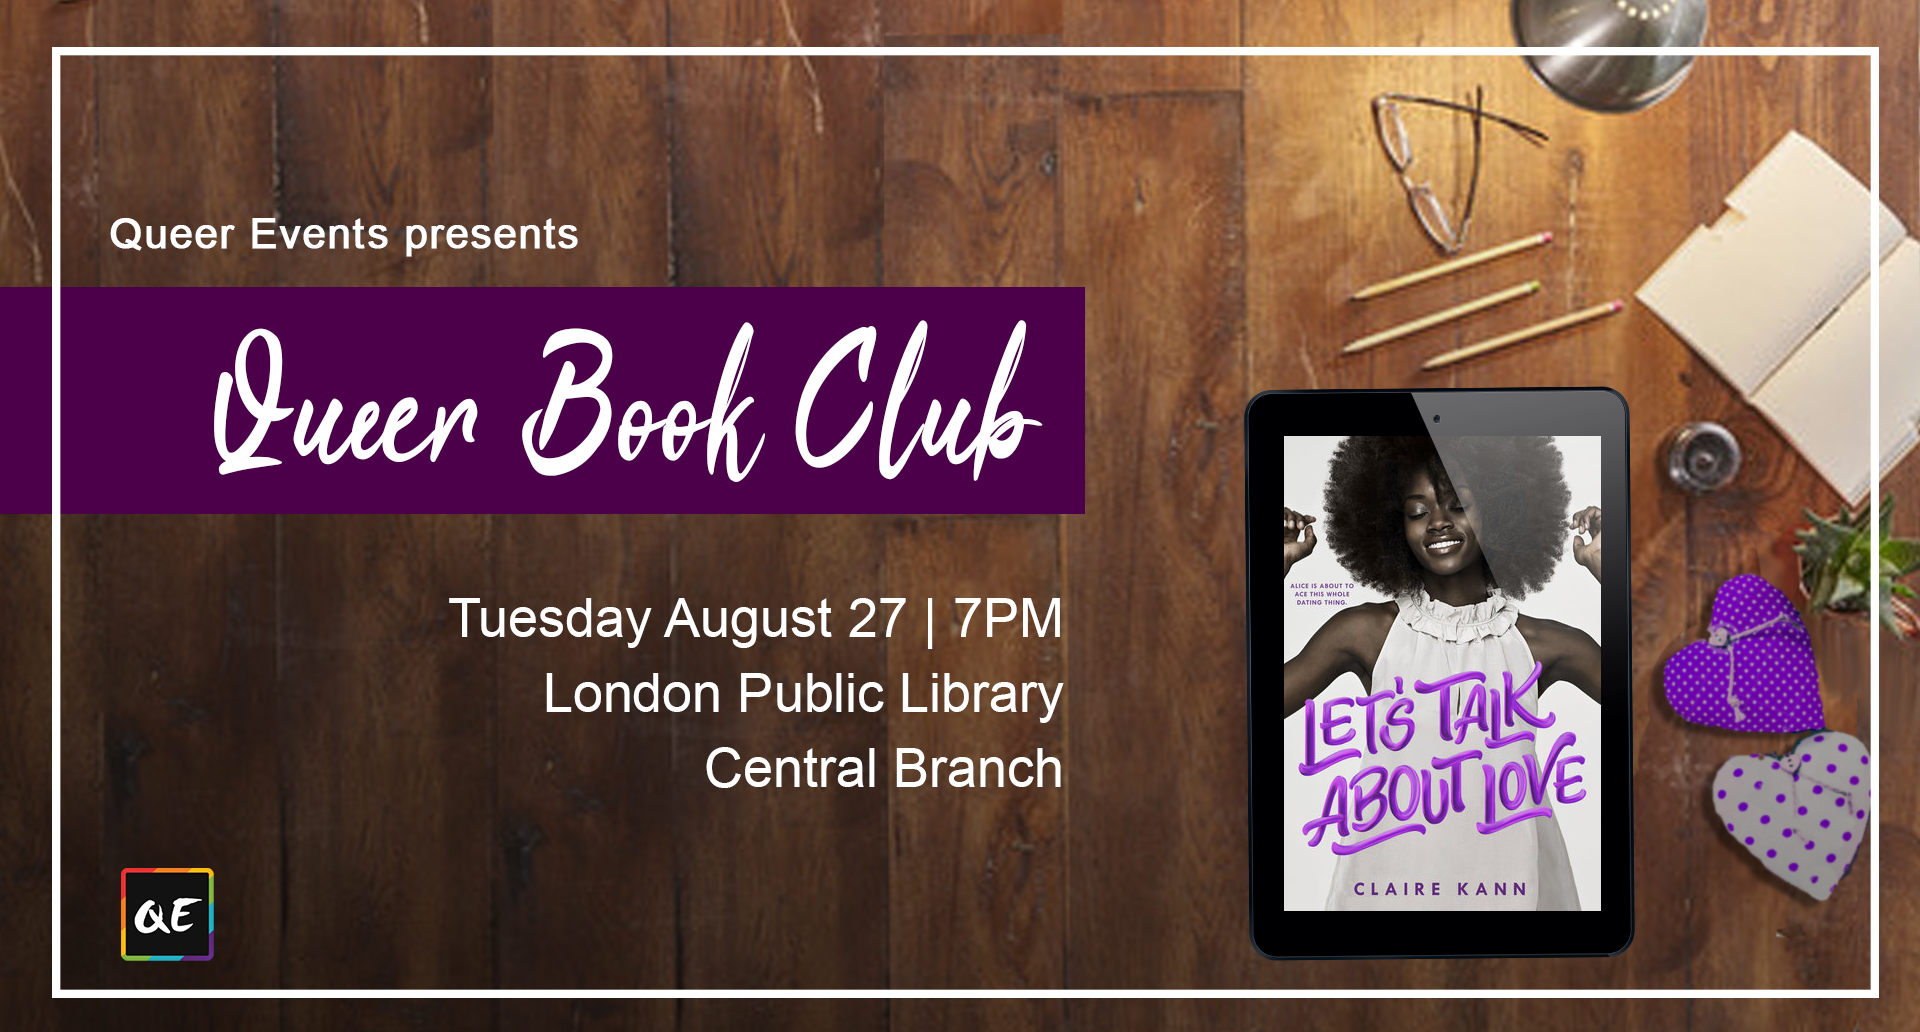 QueerEvents.ca- London Event Listing - August Queer Book Club